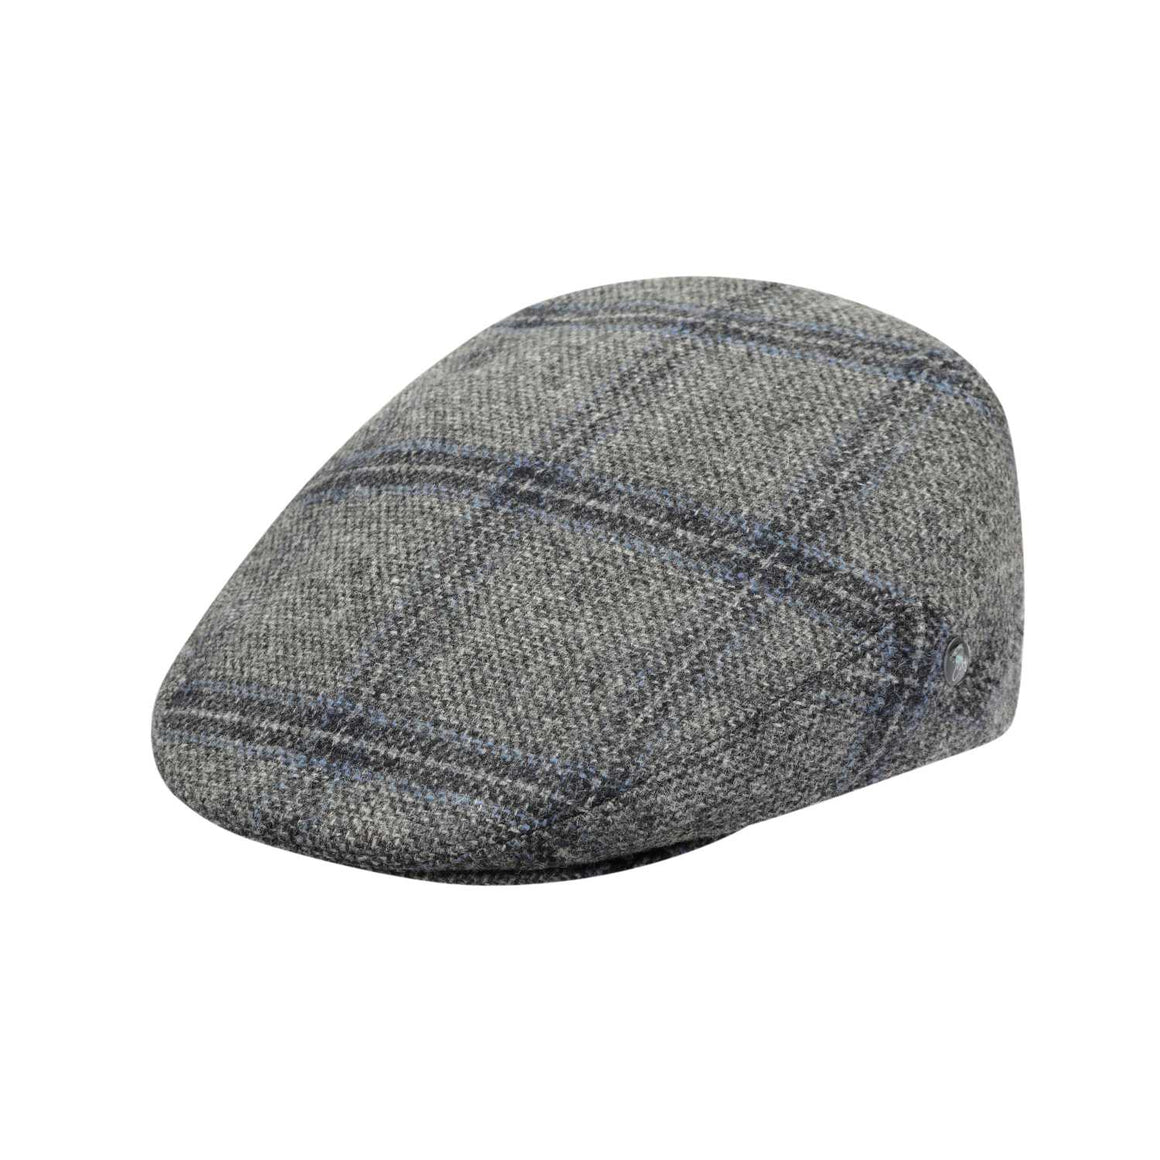 The Cashmere Choice - City Sport - Cool Comfort - Wool Flat Cap - Grey Windowpane Overcheck 3403